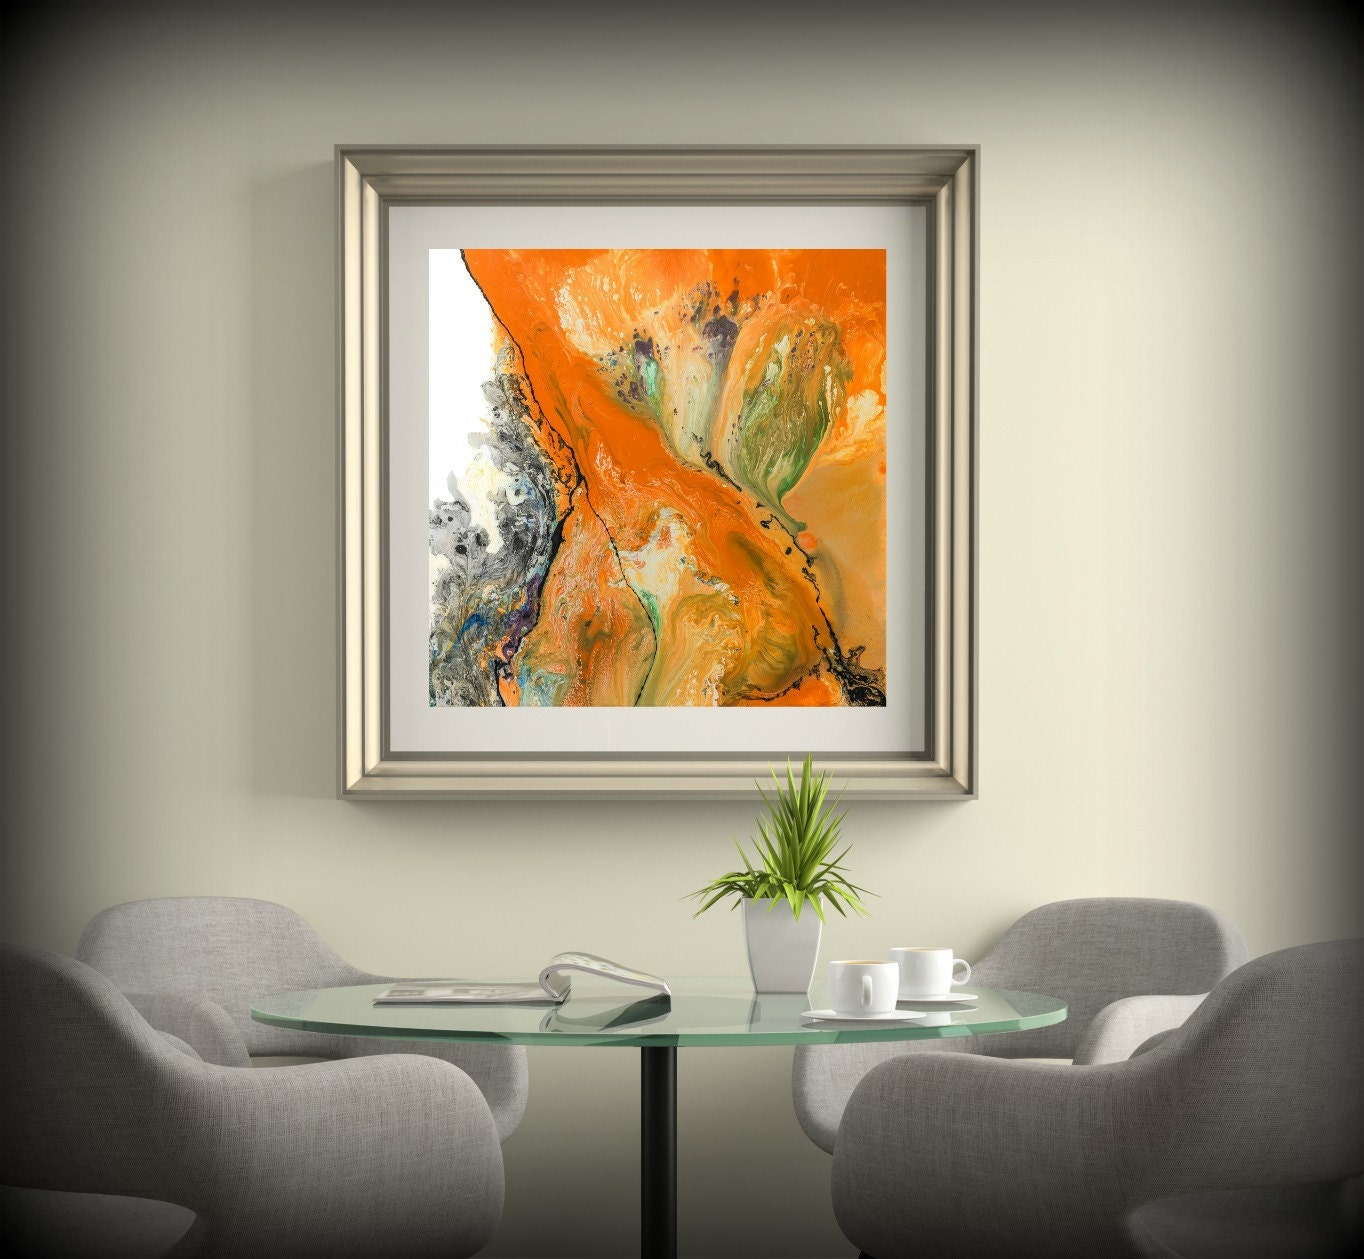 LIVING ROOM DECOR Square Wall Decor Orange Wall Art Dining Room Decor  Bathroom Art Print Bedroom Canvas Art Home Decor Wall Hanging